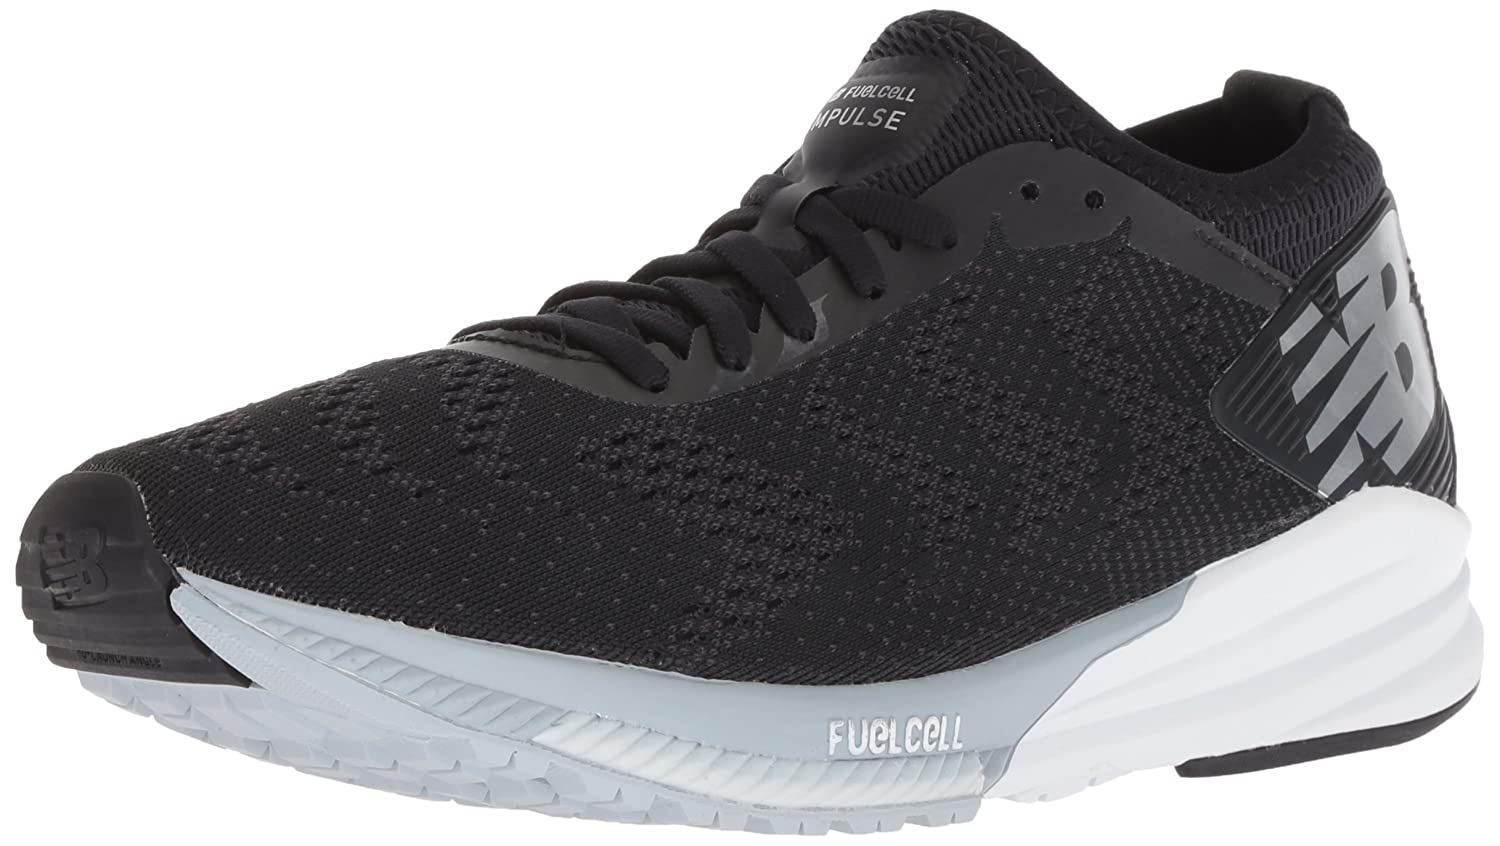 New Balance Women's Impulse V1 FuelCell Running Shoe B075R78J43 7.5 B(M) US|Black